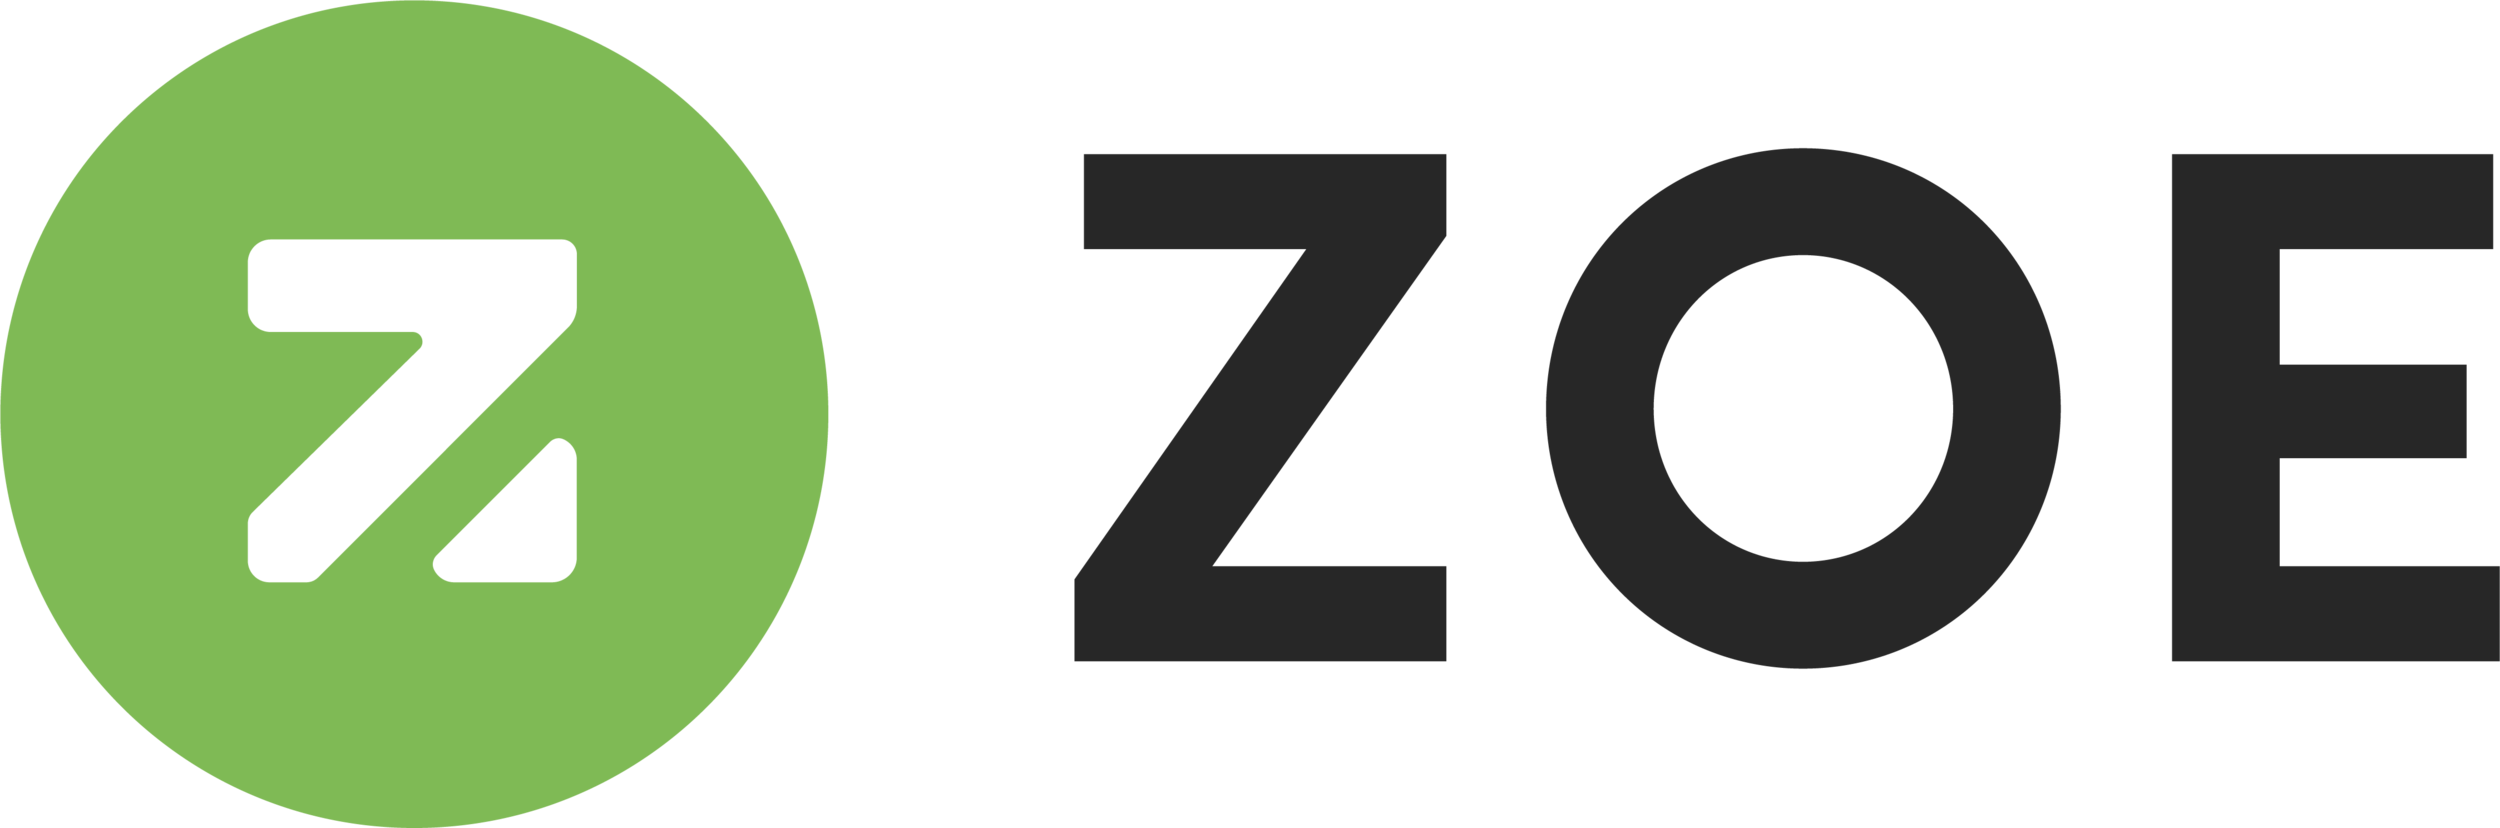 ZOE-Logo-Colored-Black.png